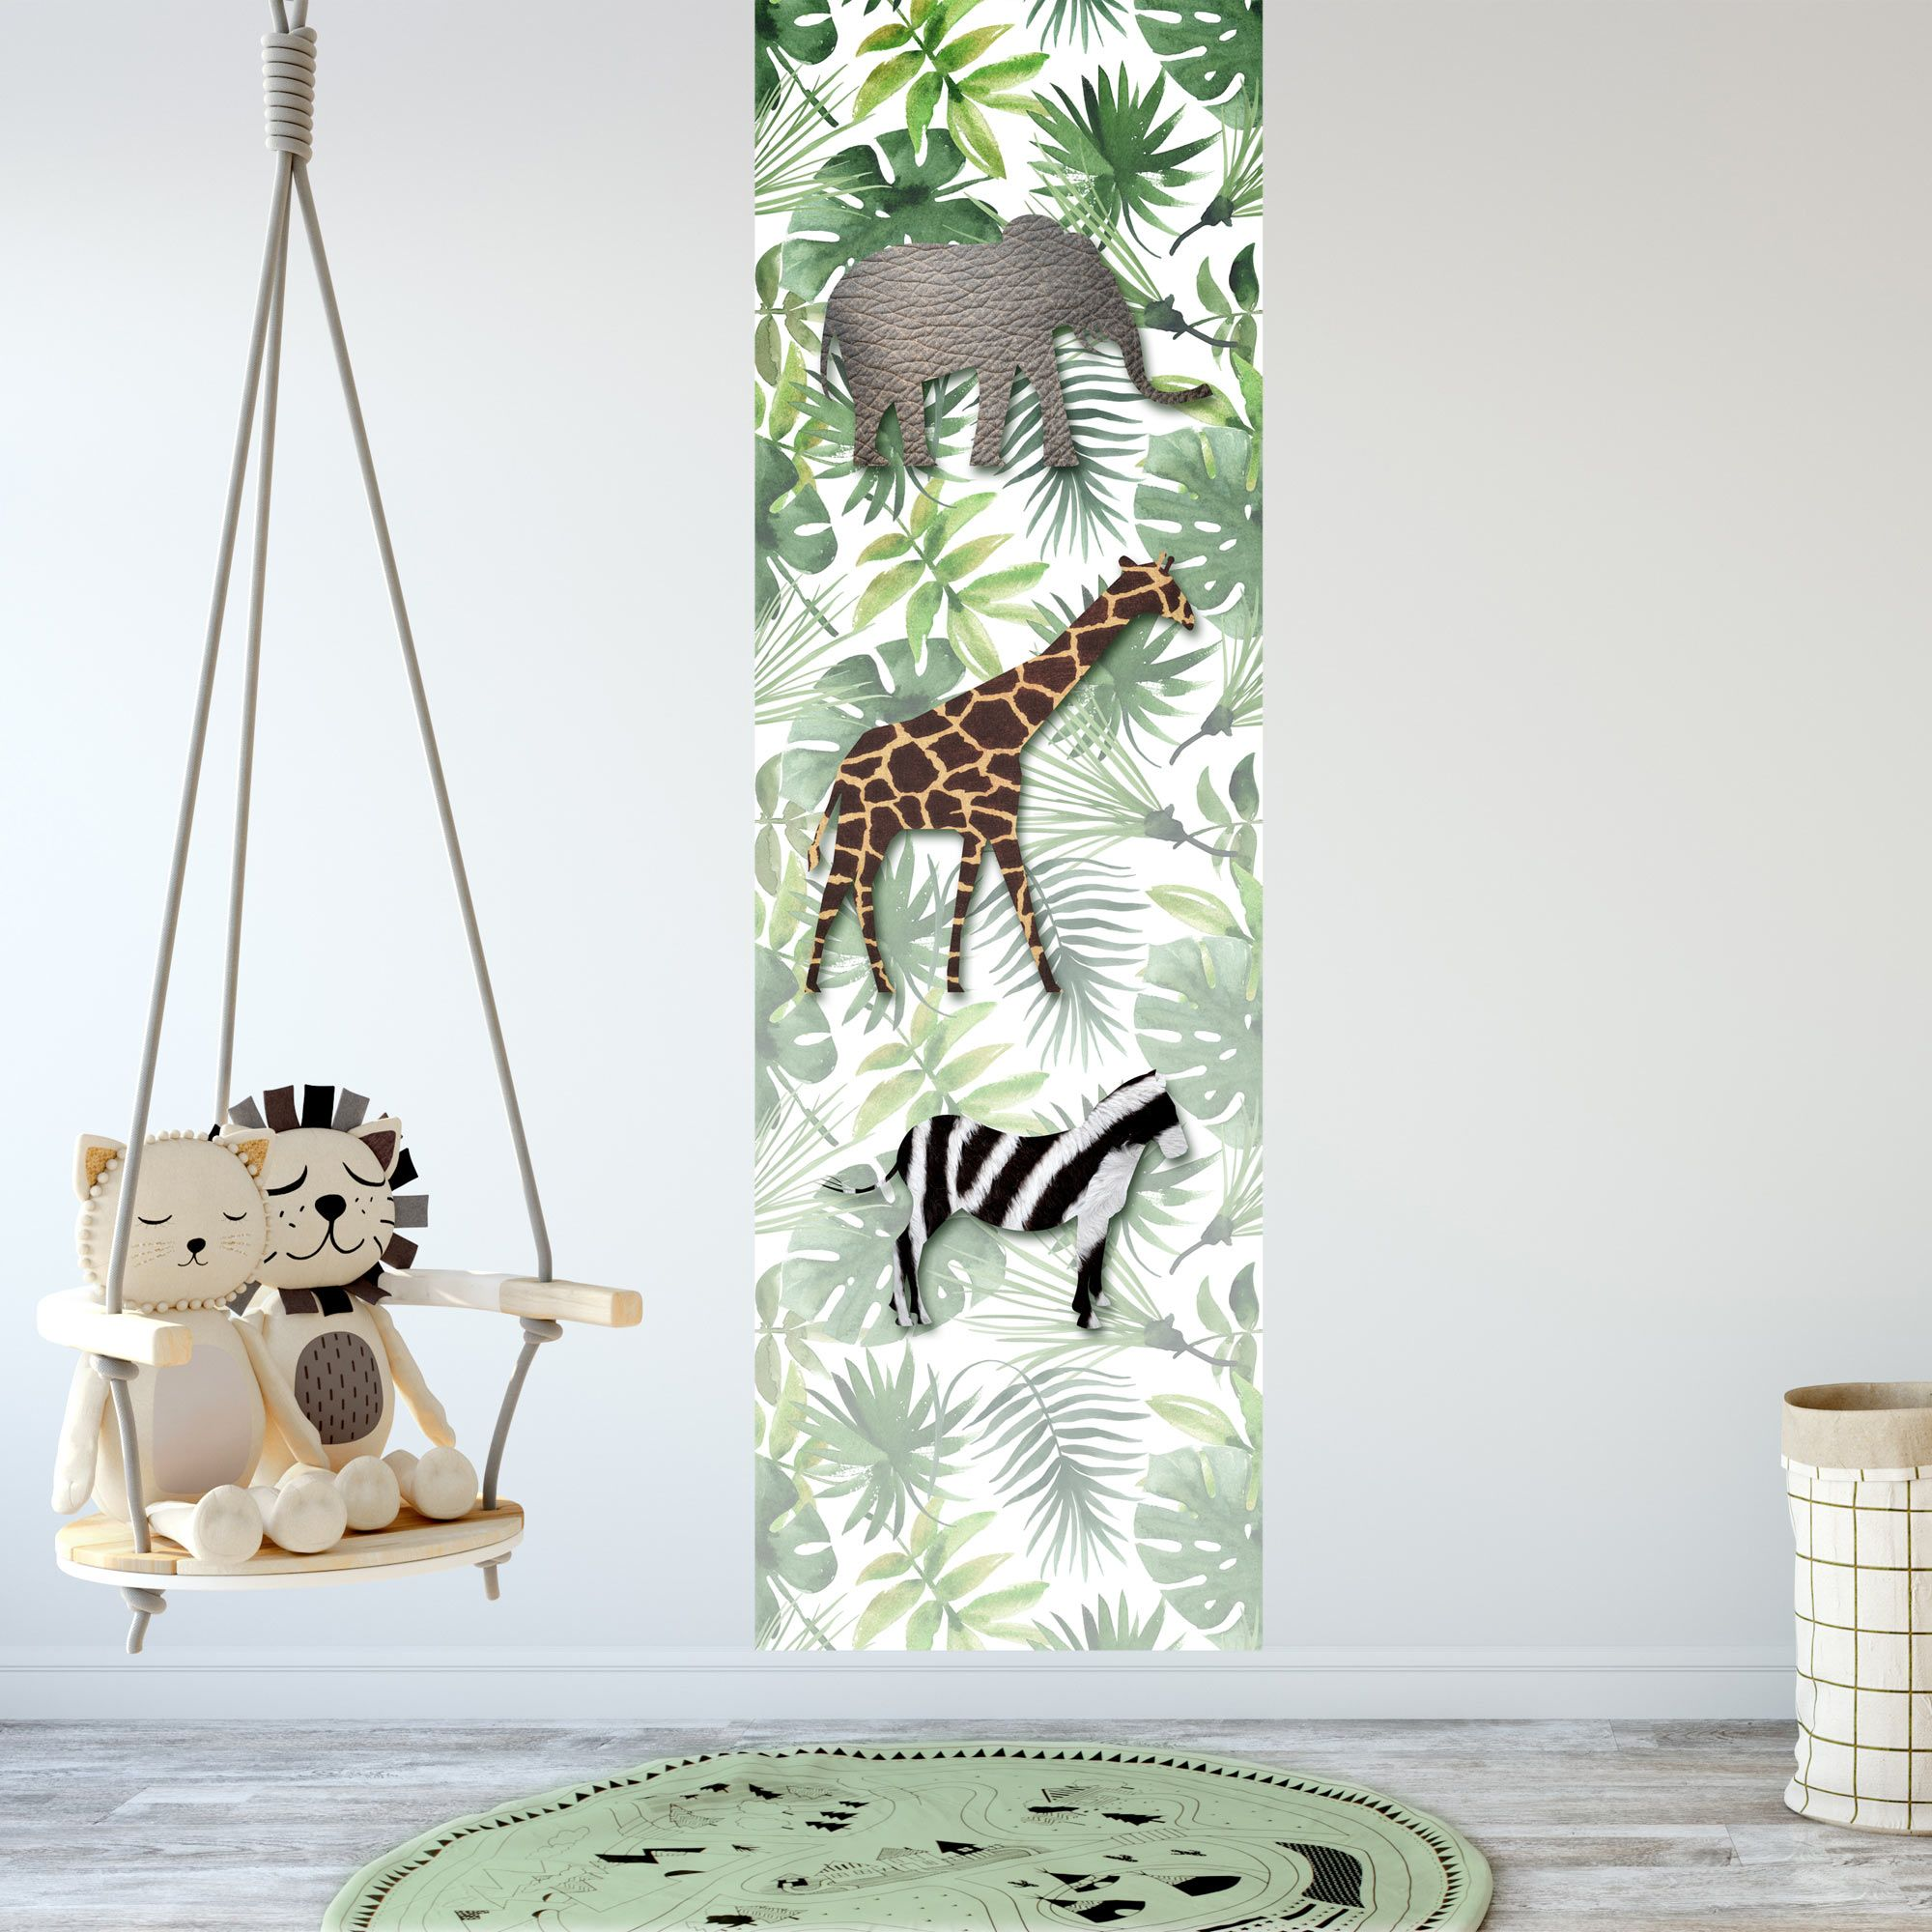 Muurstickers Dieren Muurstickers Jungle Kinderkamer